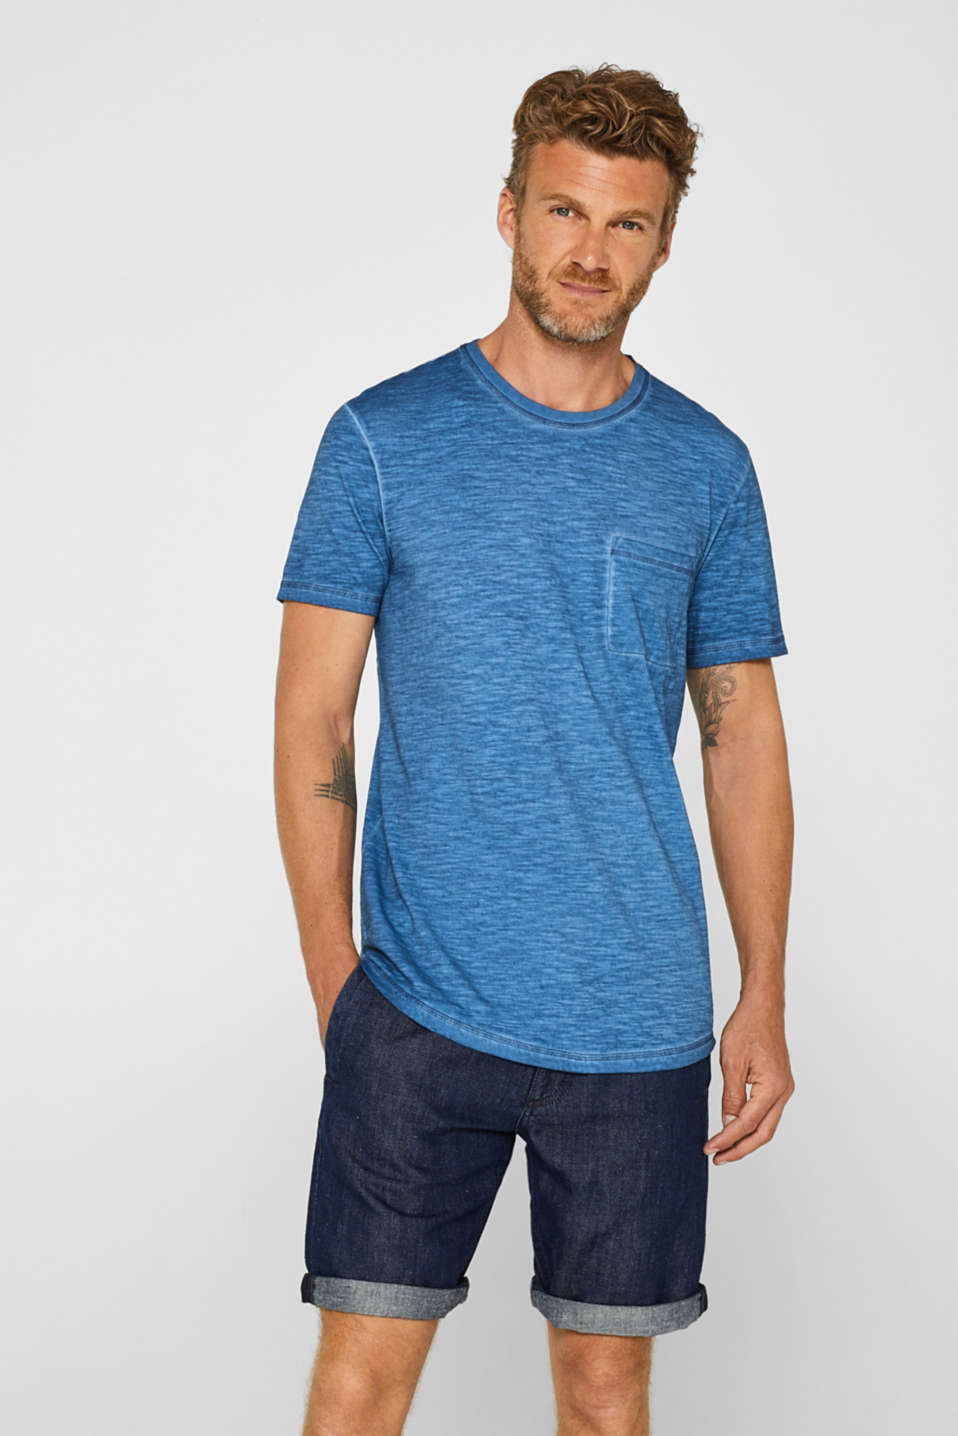 edc - Long slub jersey T-shirt, 100% cotton